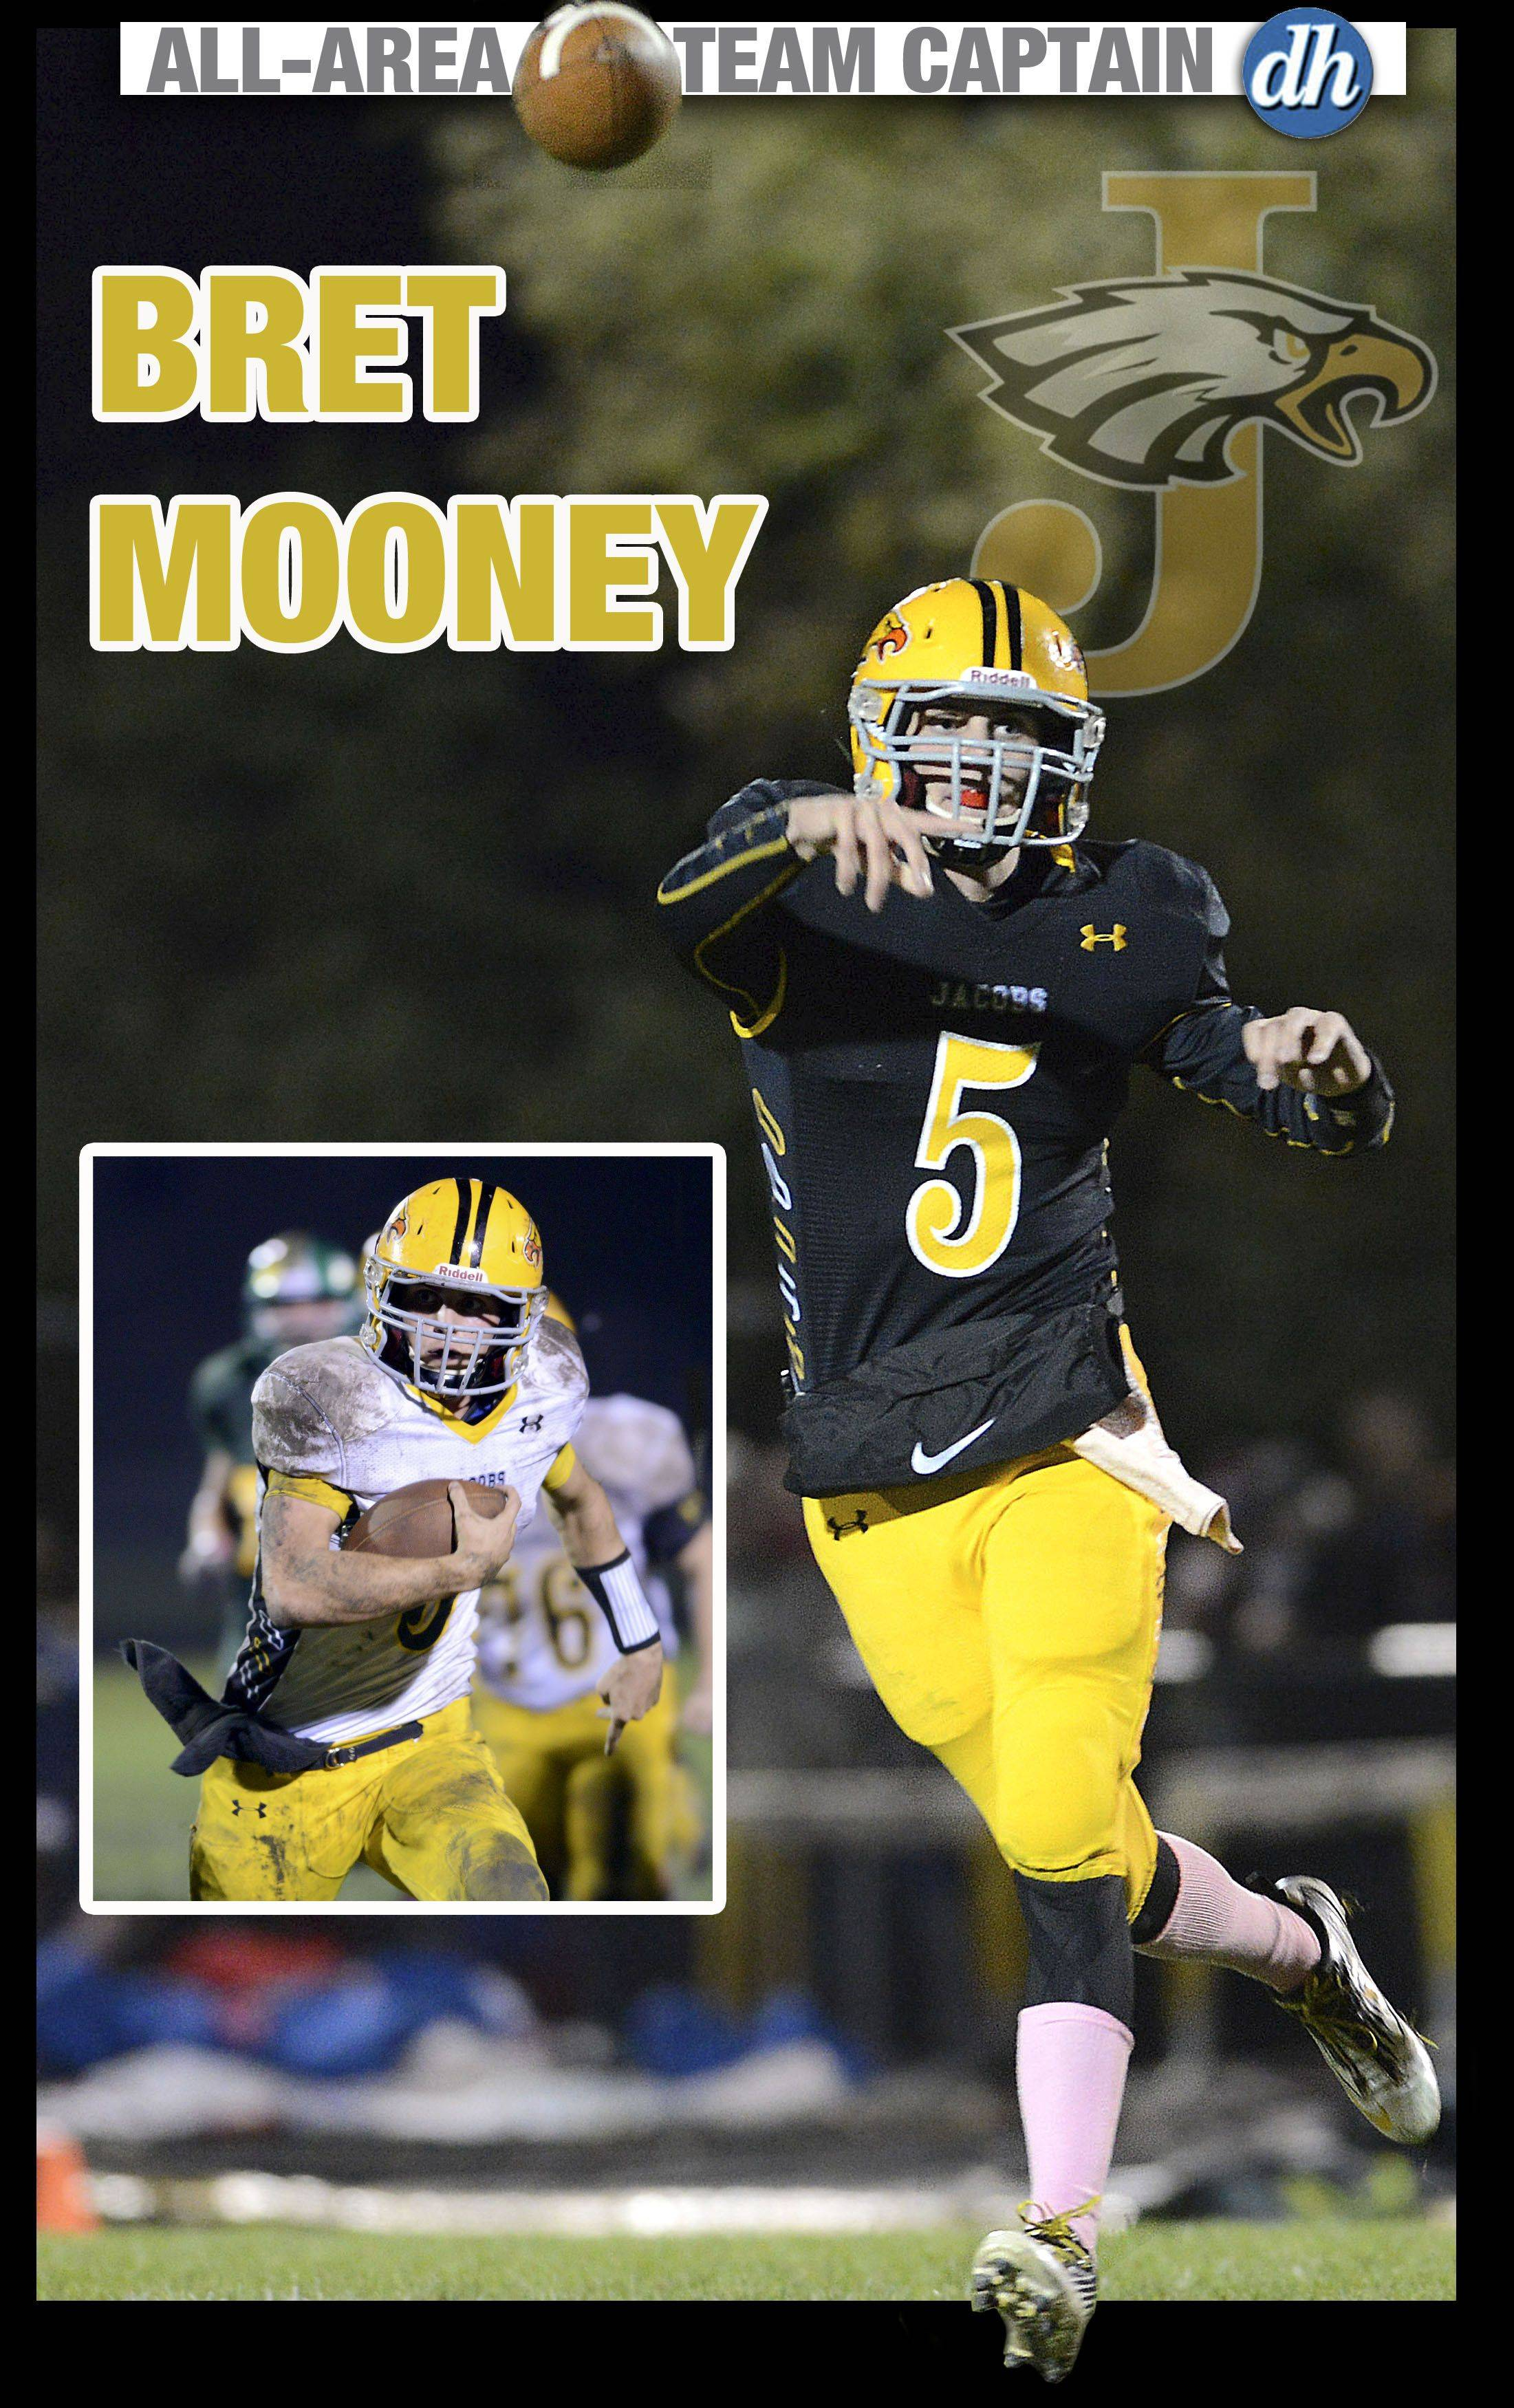 Bret Mooney of Jacobs is a Daily Herald All-Area Team Captain in football for 2013.